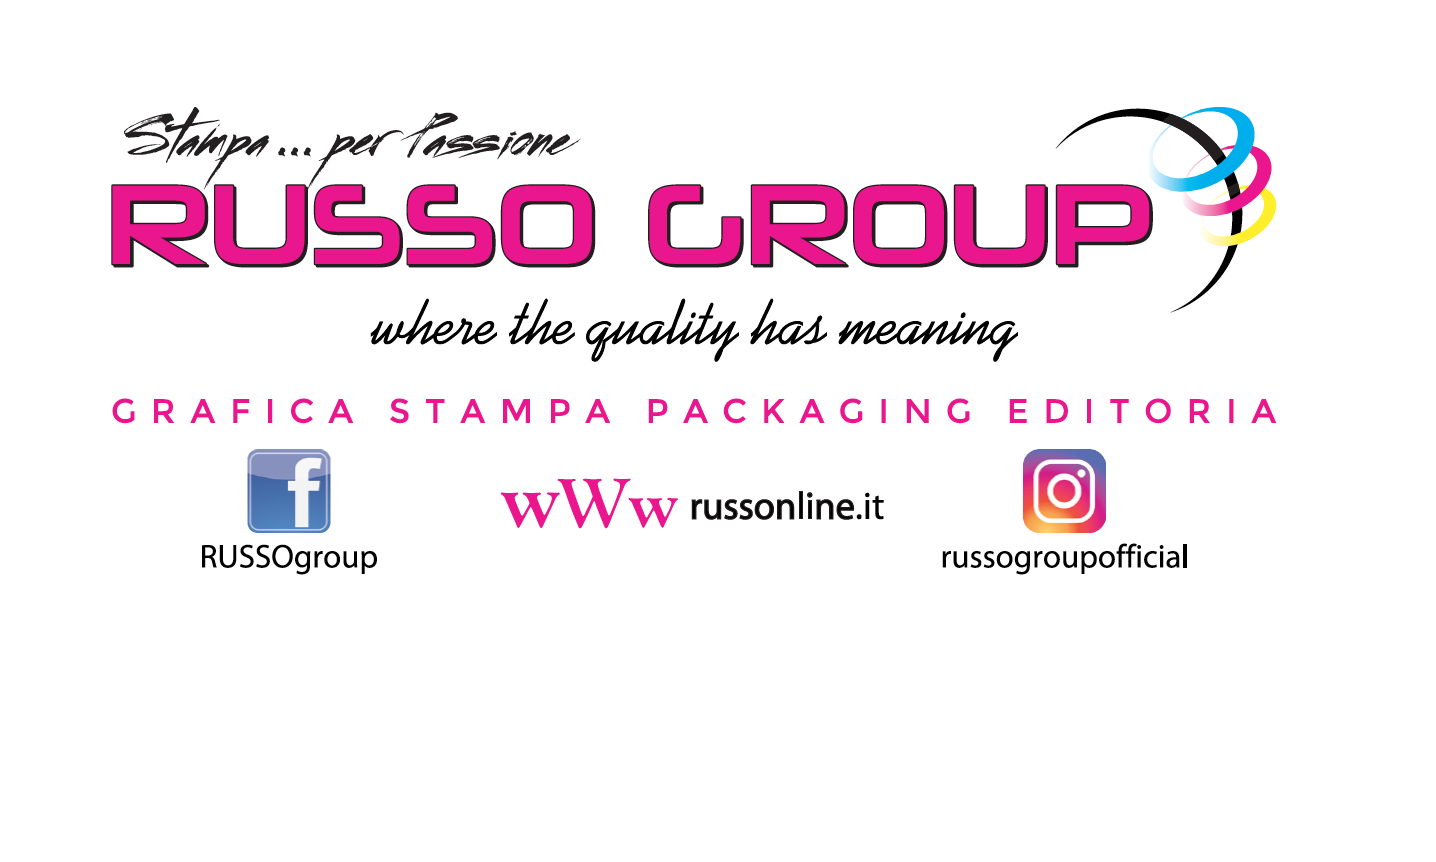 Russo Group